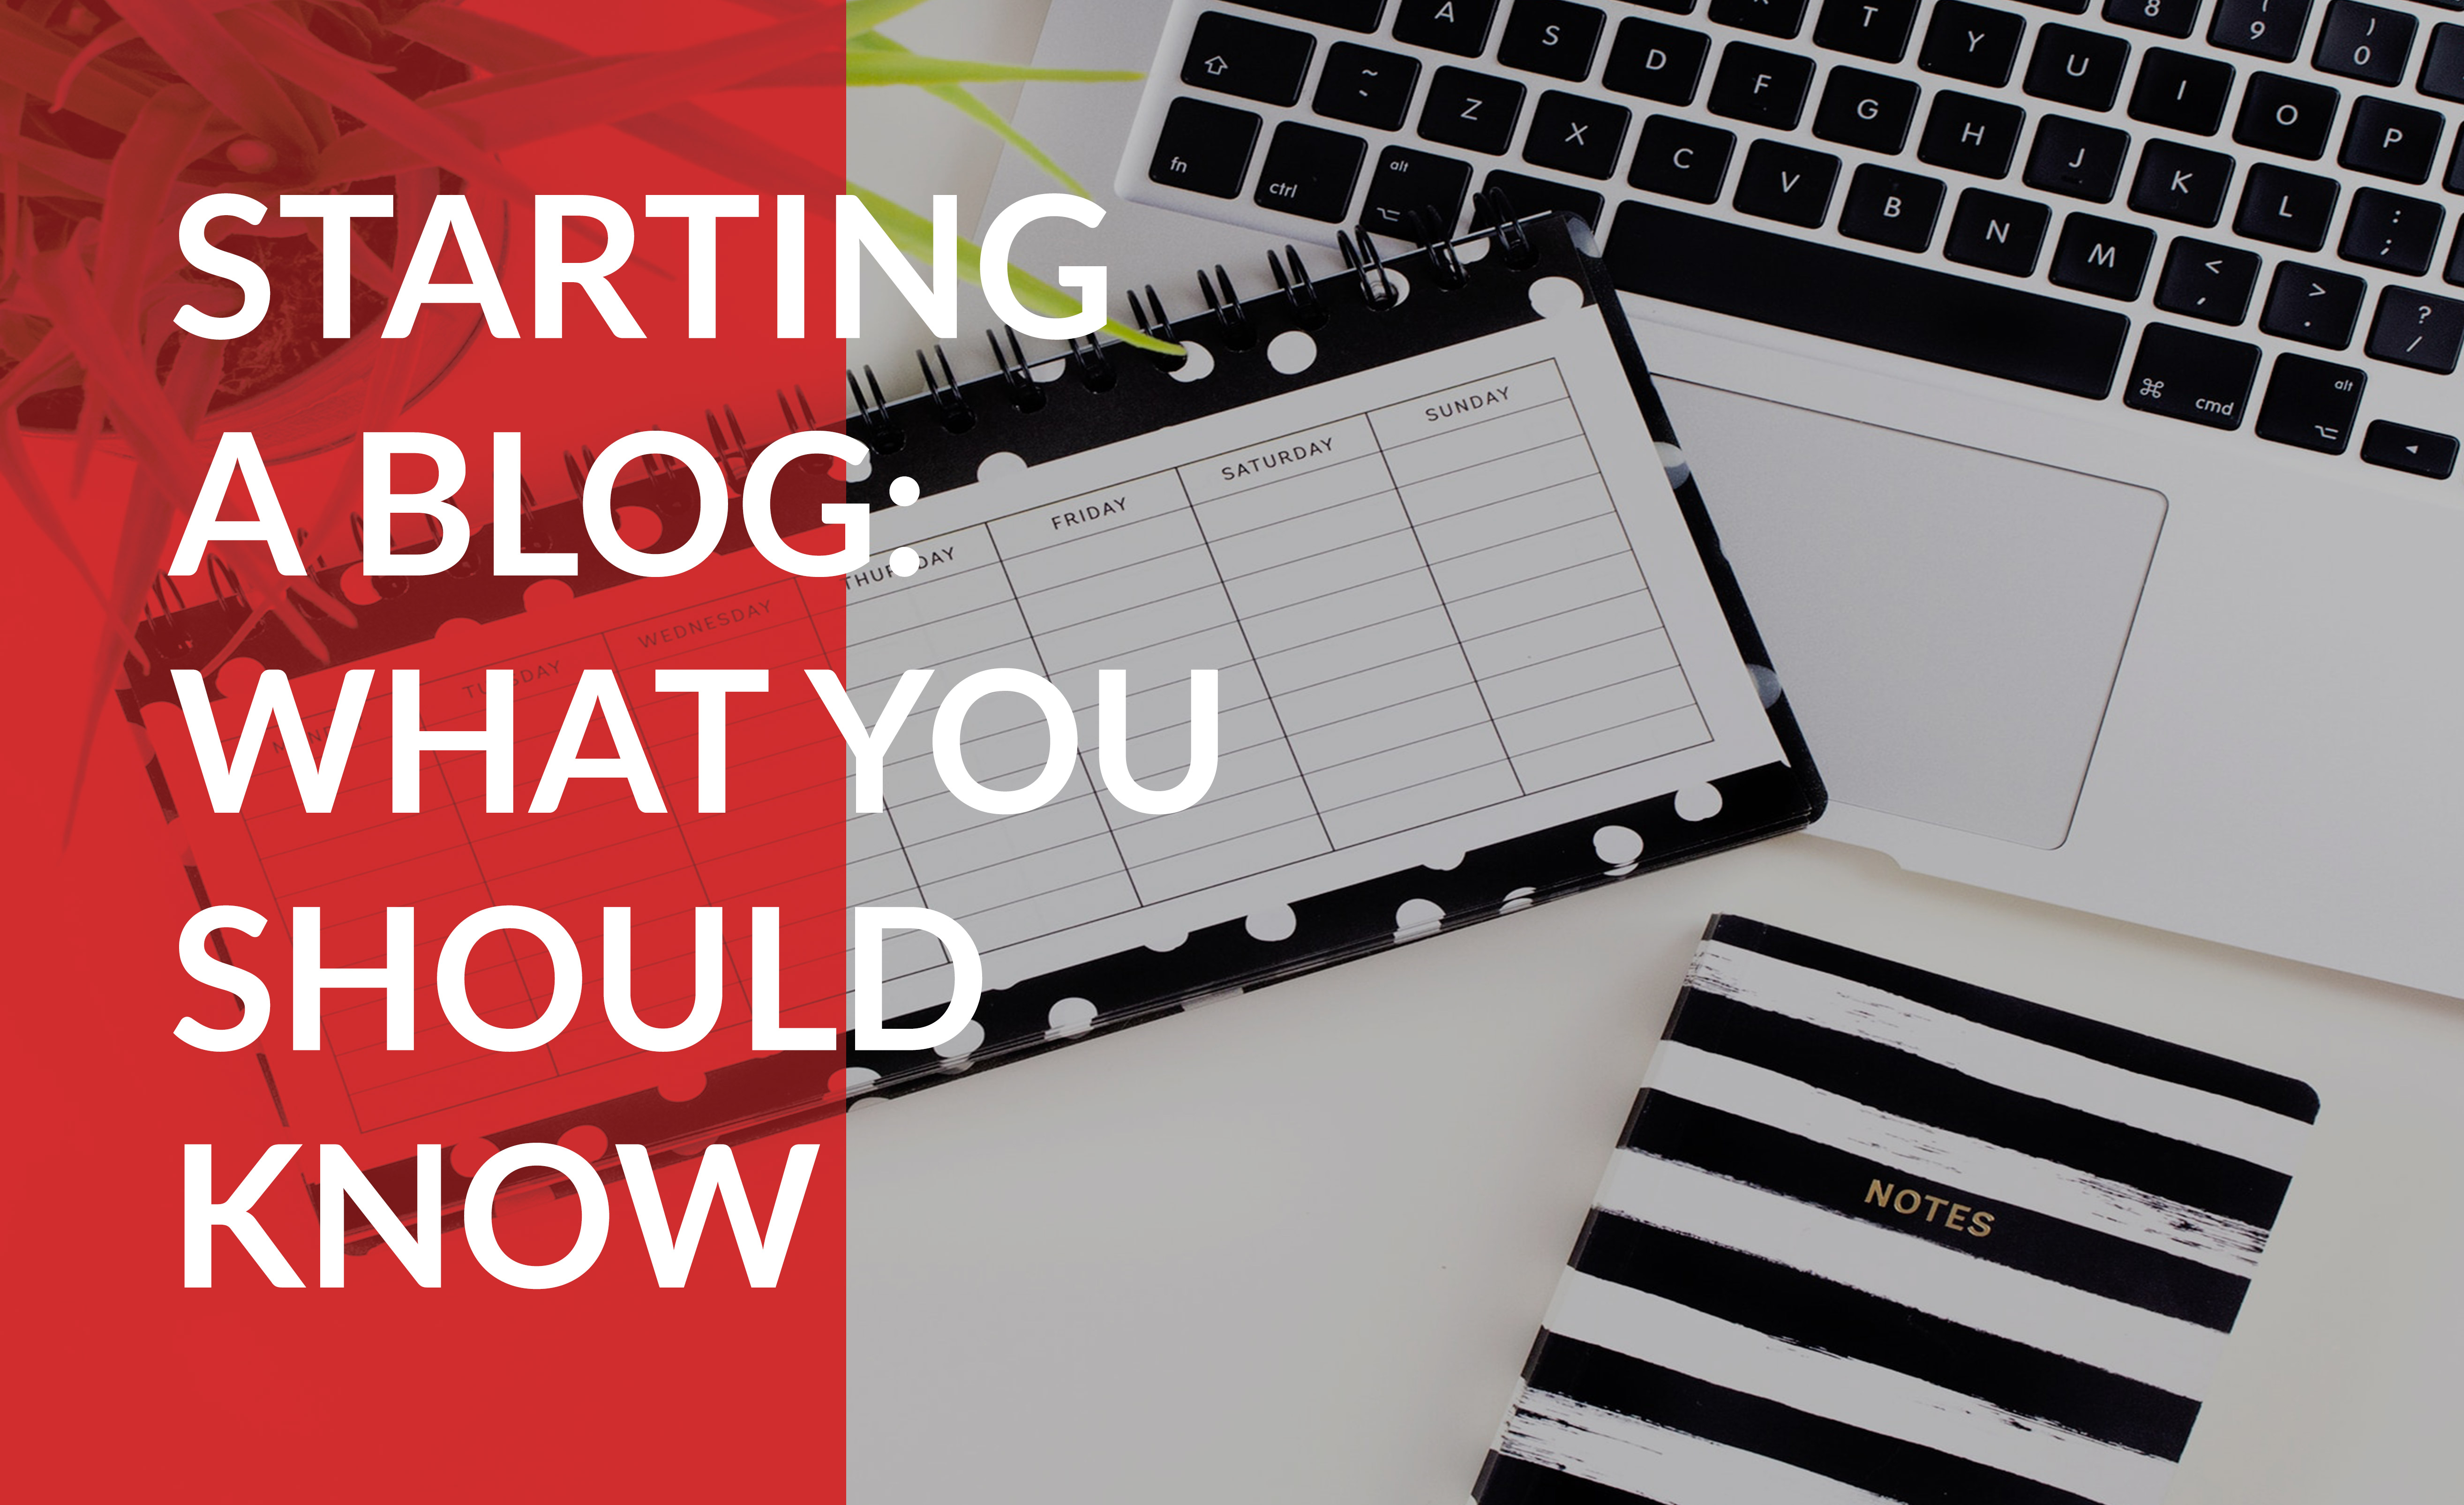 Starting a blog: What you should know